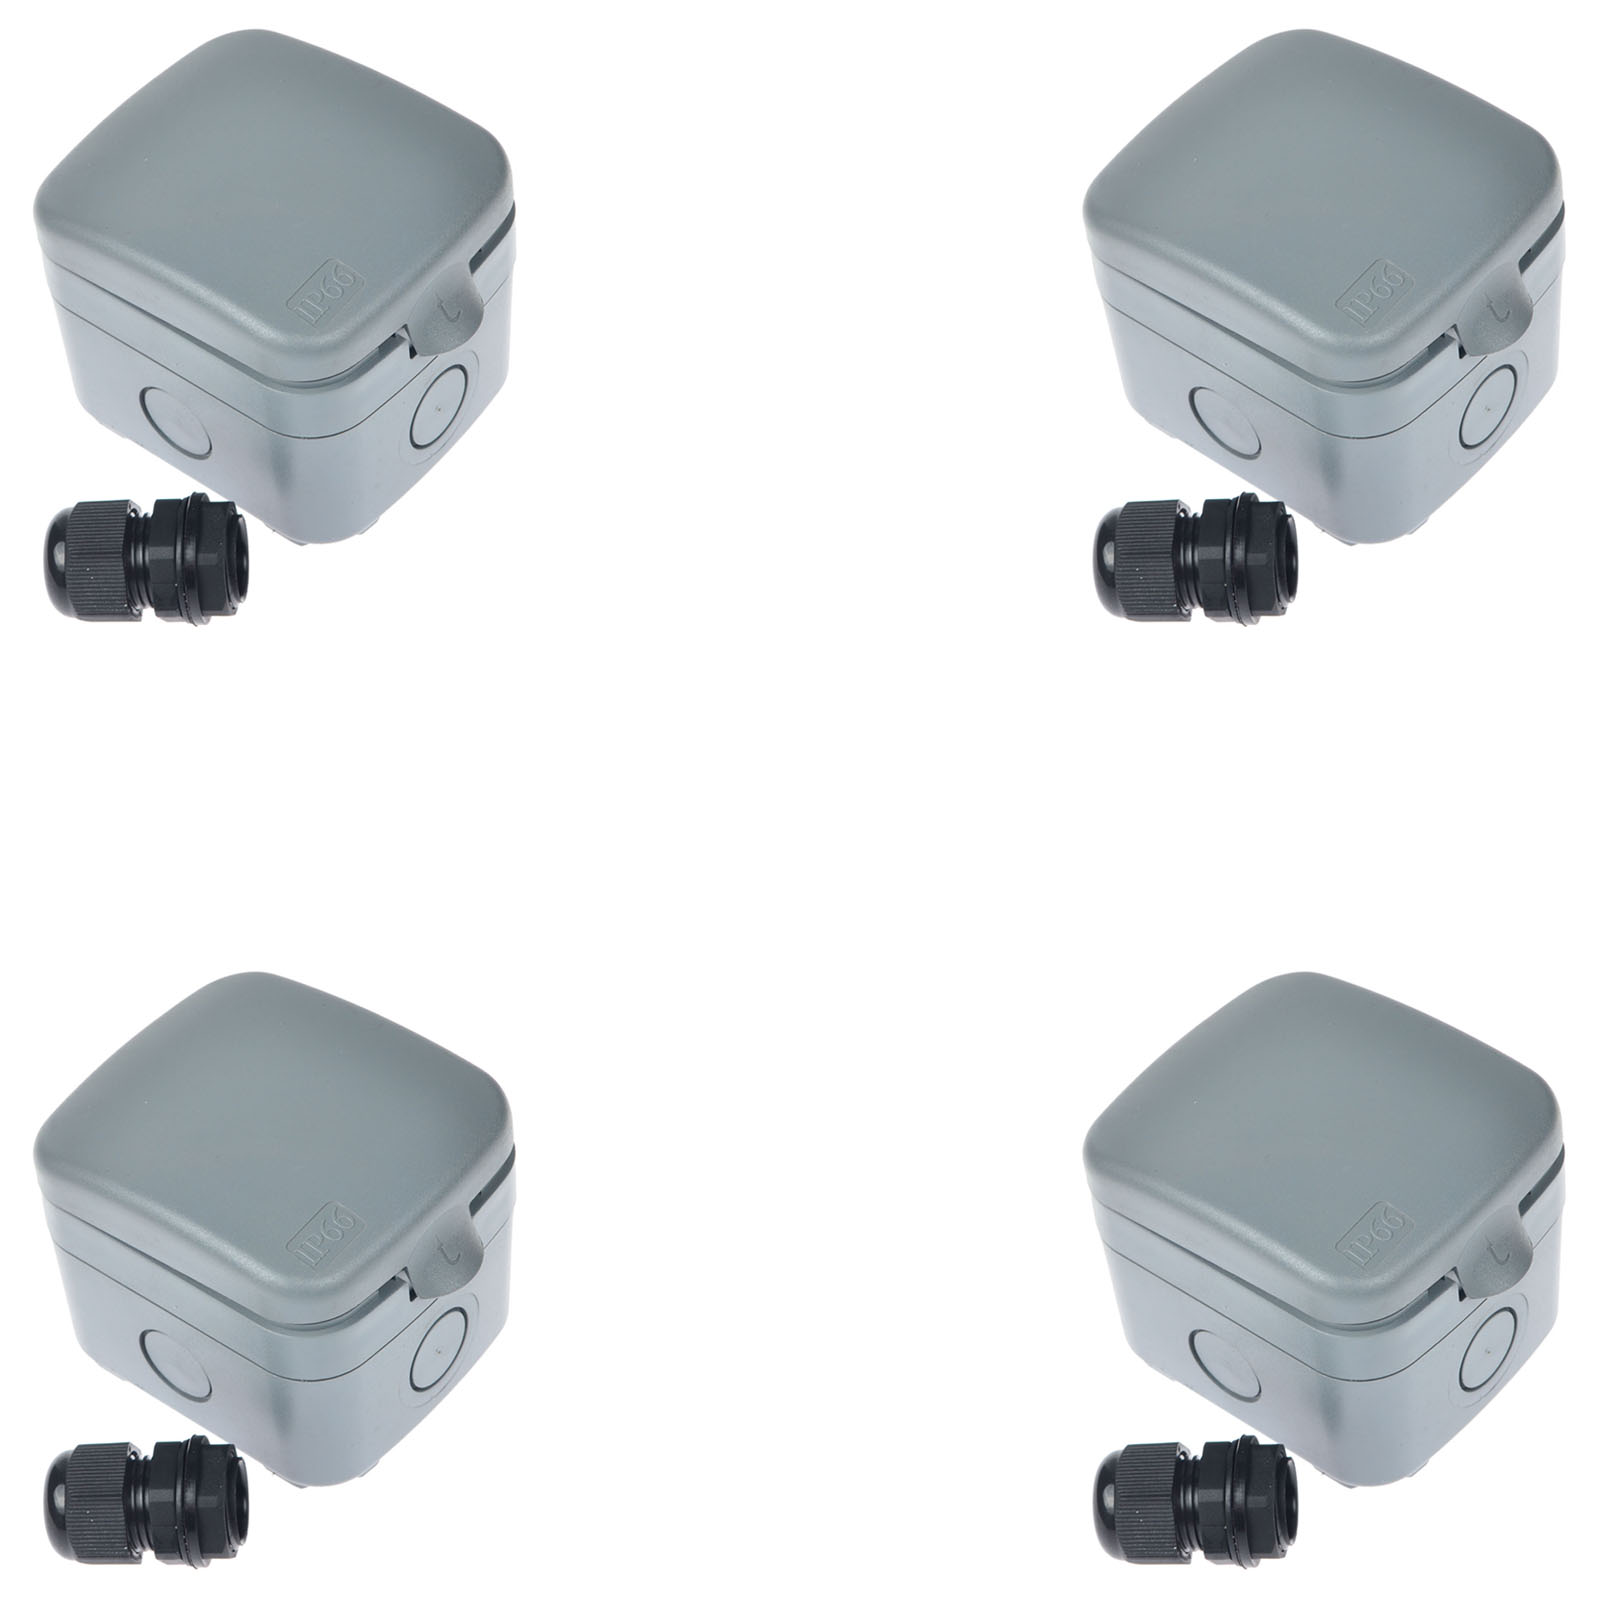 4PK Weatherproof Exterior Outdoor Light Switch Garden 15A IP66 ...